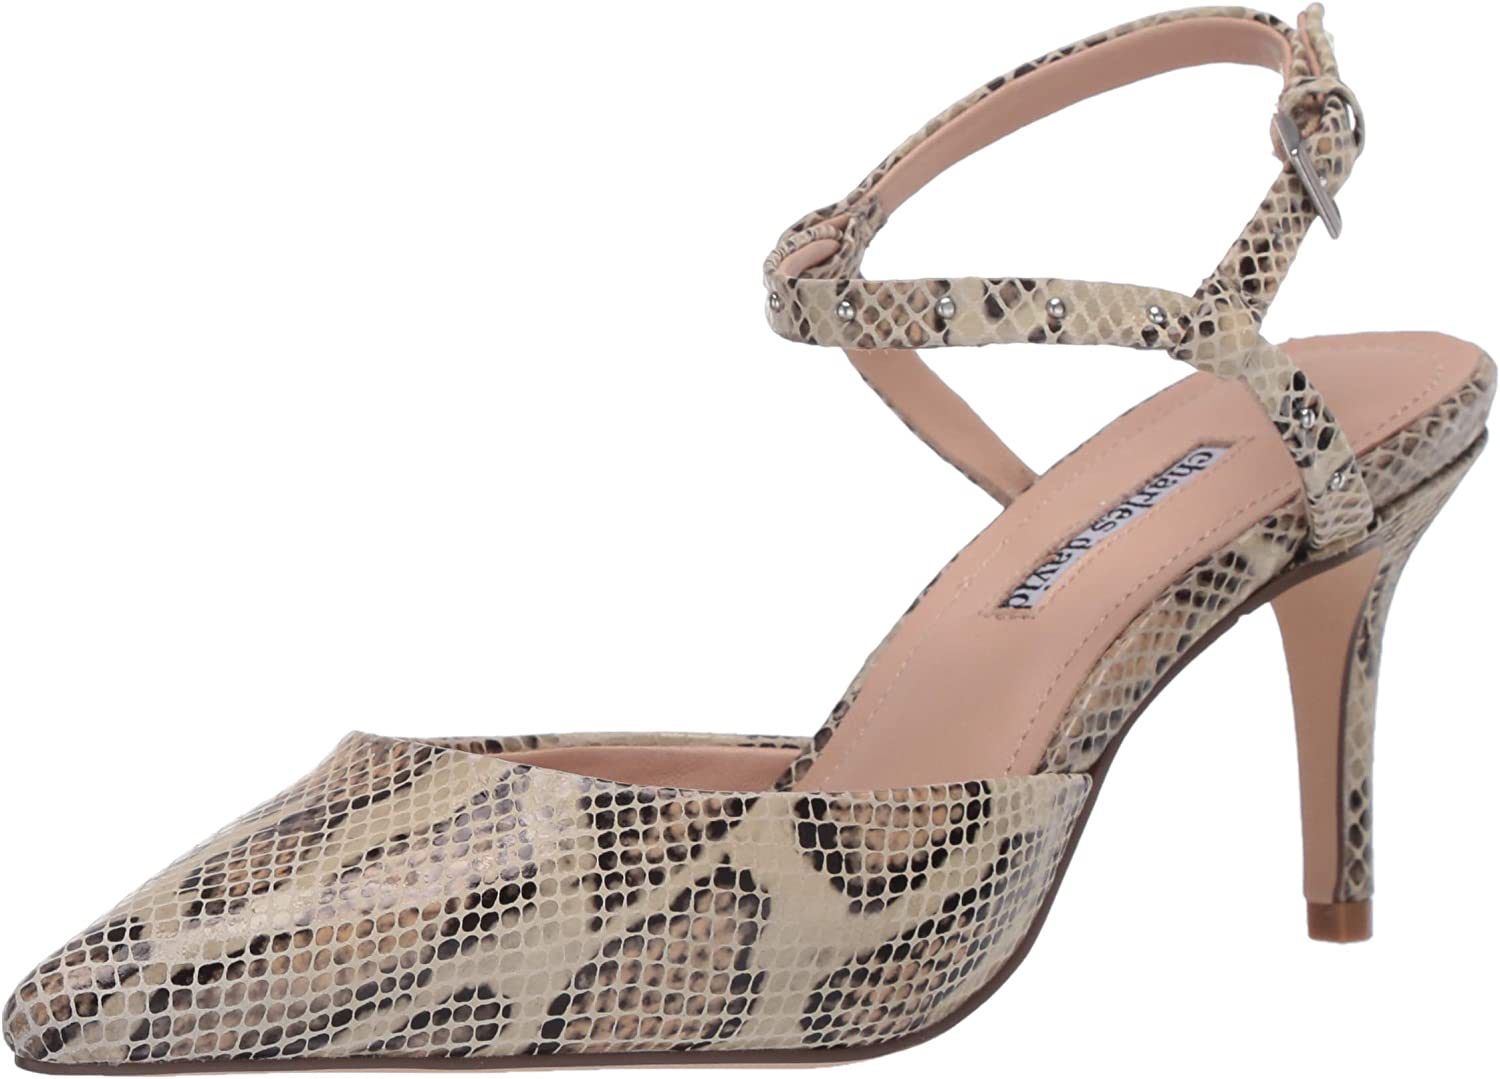 Popular products CHARLES DAVID Women's Casual Dress Deluxe Pump